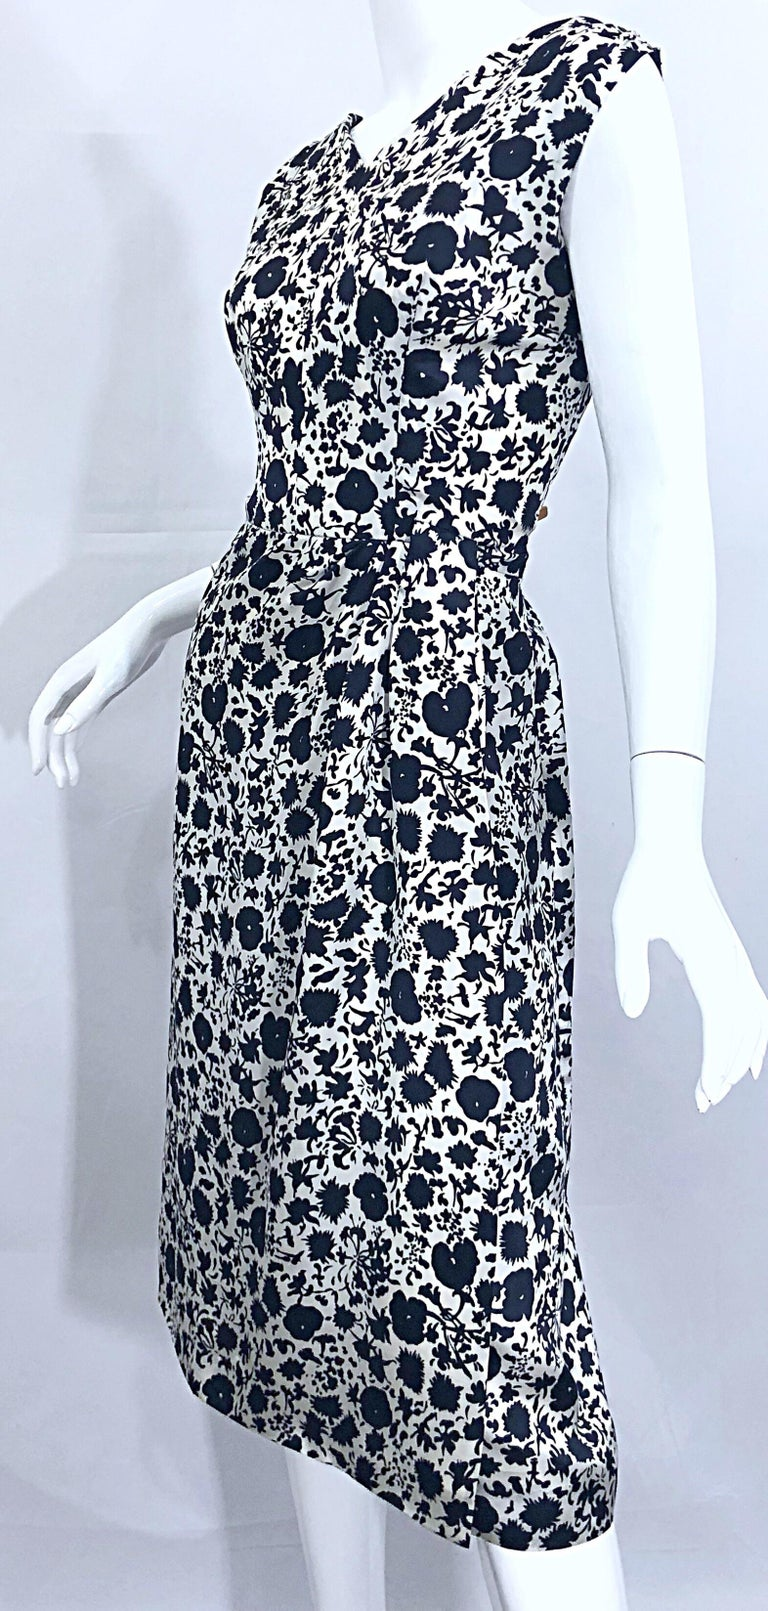 1950s House of Branell Black and White Silk Floral Vintage 50s Wrap Dress For Sale 1